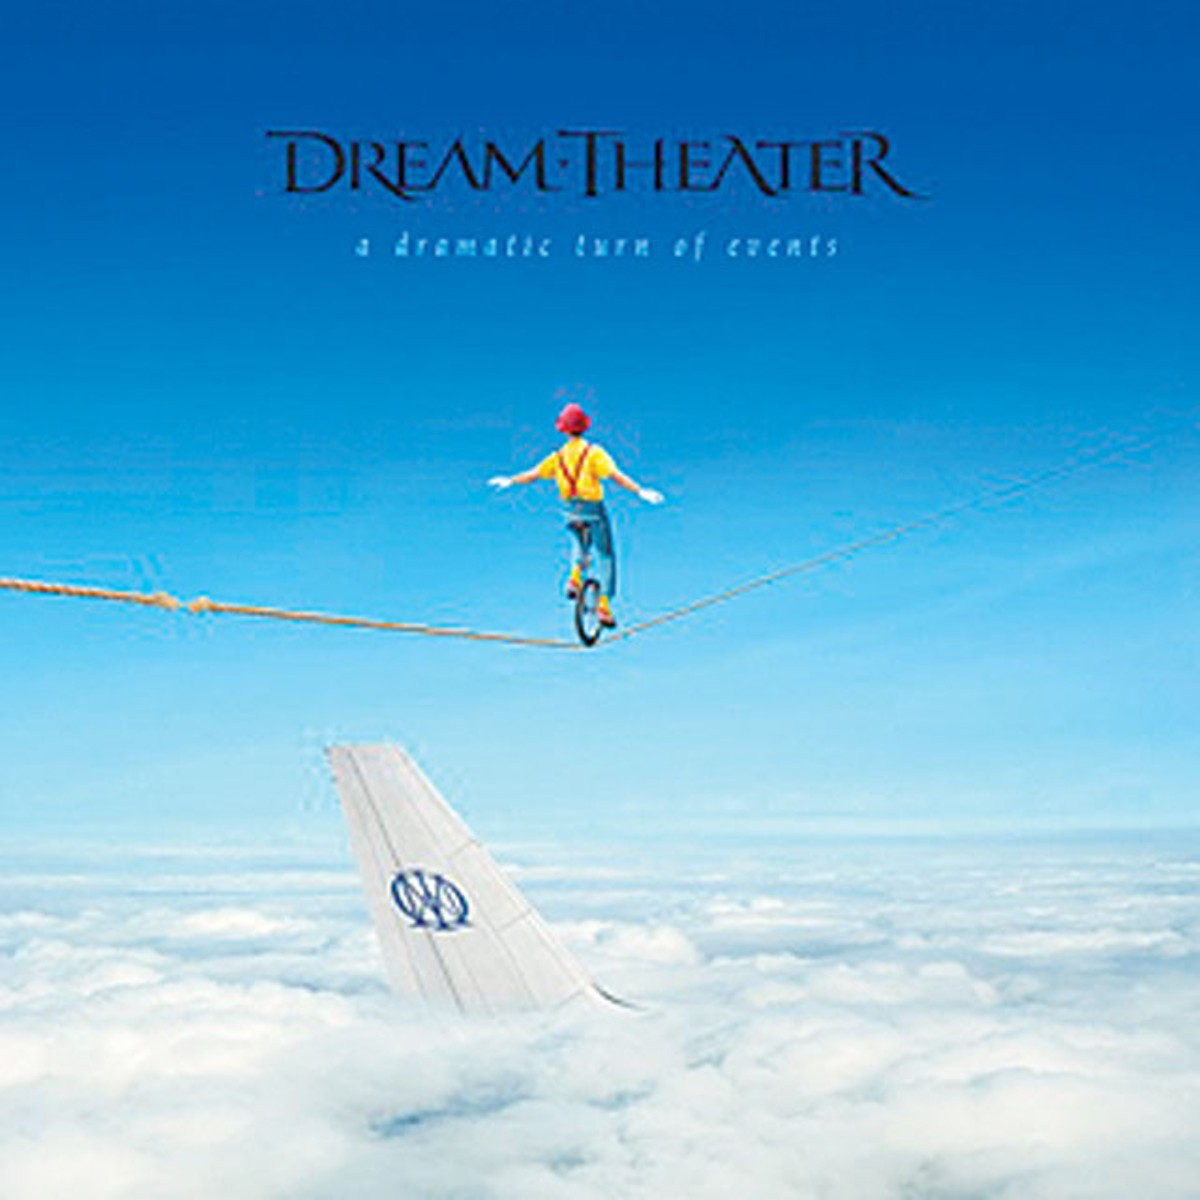 Dream Theater - A Dramatic Turn of Events - Encyclopaedia